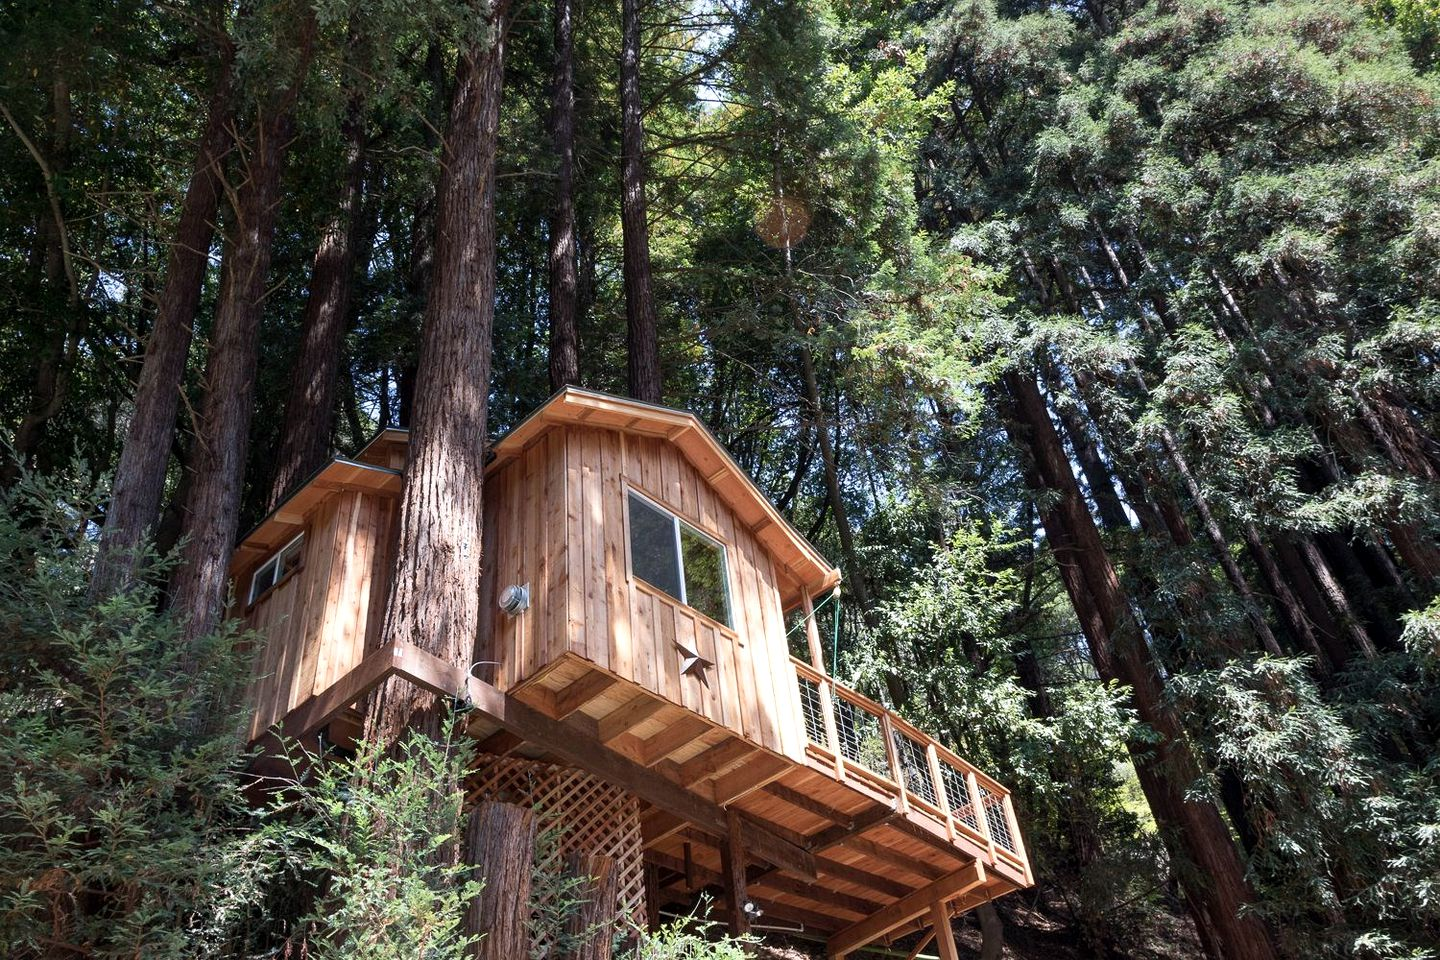 Tree house rental for a Santa Cruz weekend getaway.